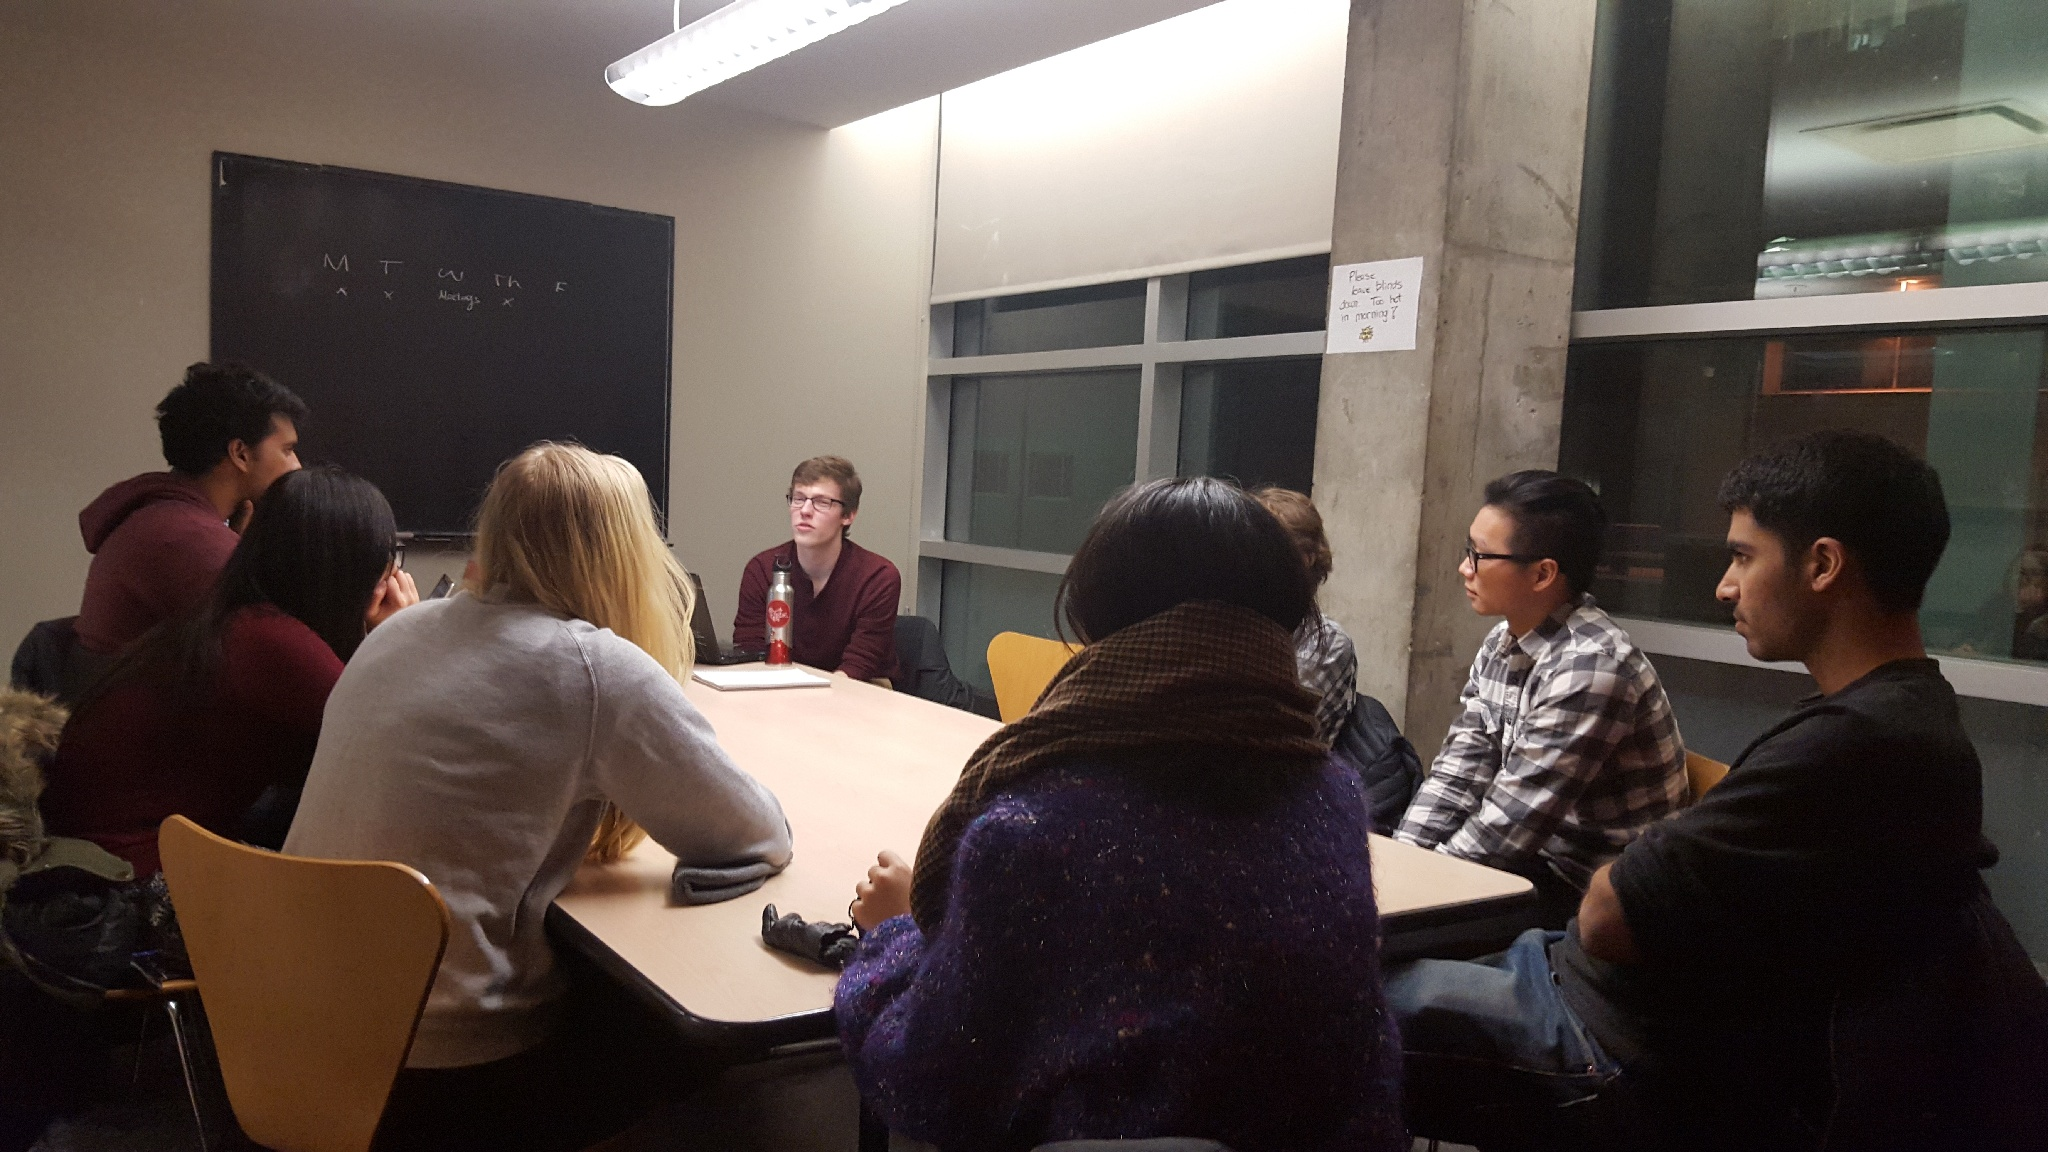 Students in a classroom meeting for a hackathon